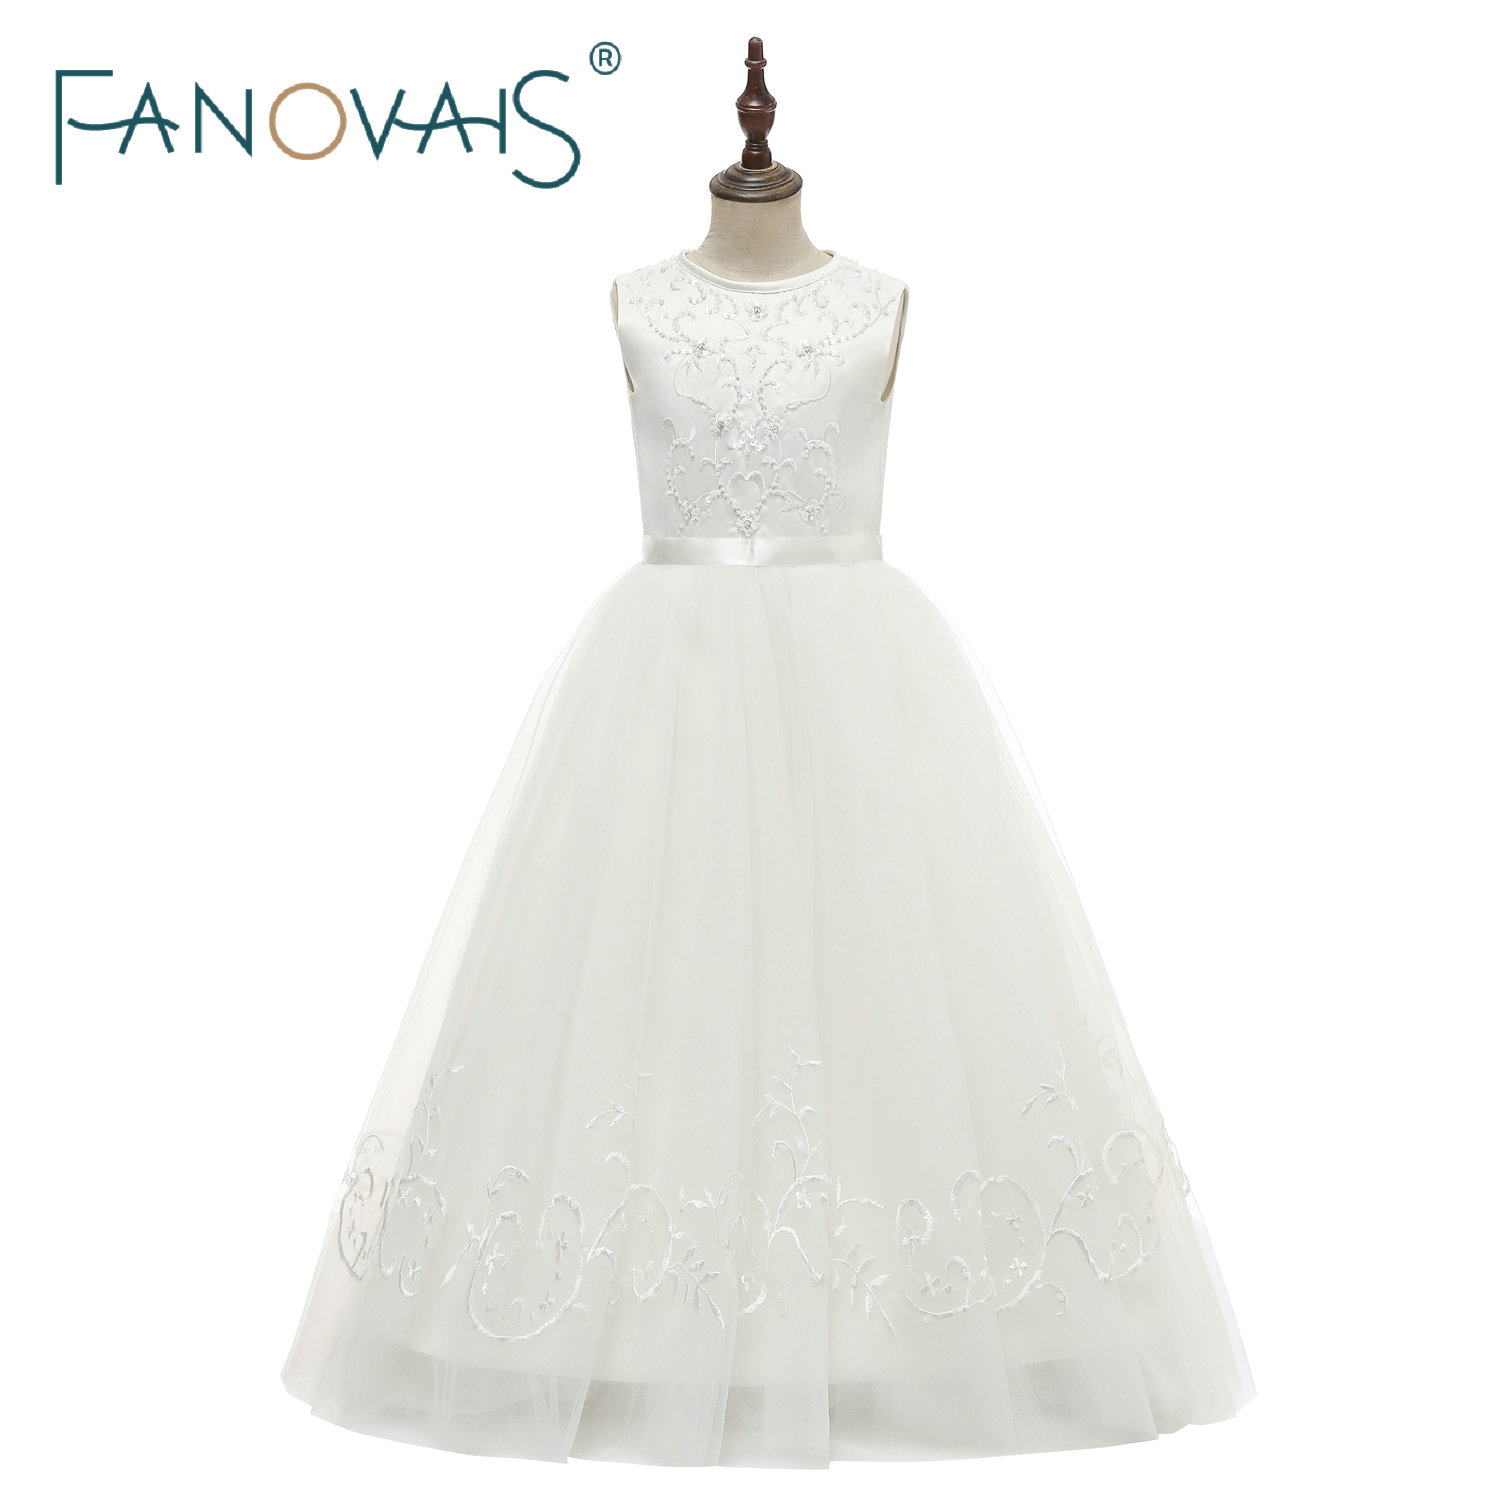 2019 Flower Girl Dresses Long Embroidery Beads Dresses for Kid Princess Party Gowns Flower Girl Dress for Wedding